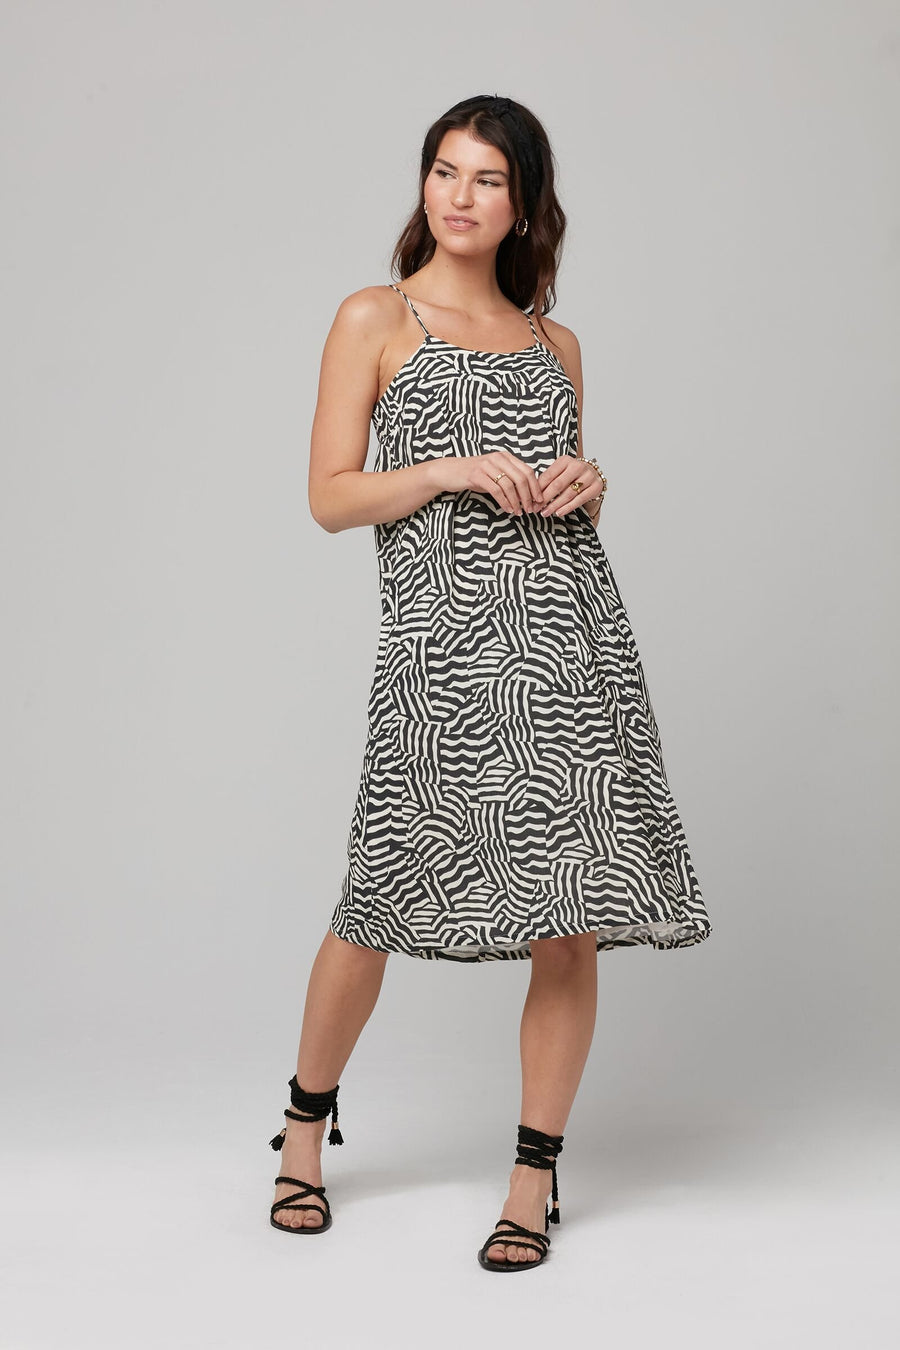 HARING DRESS-BLACK